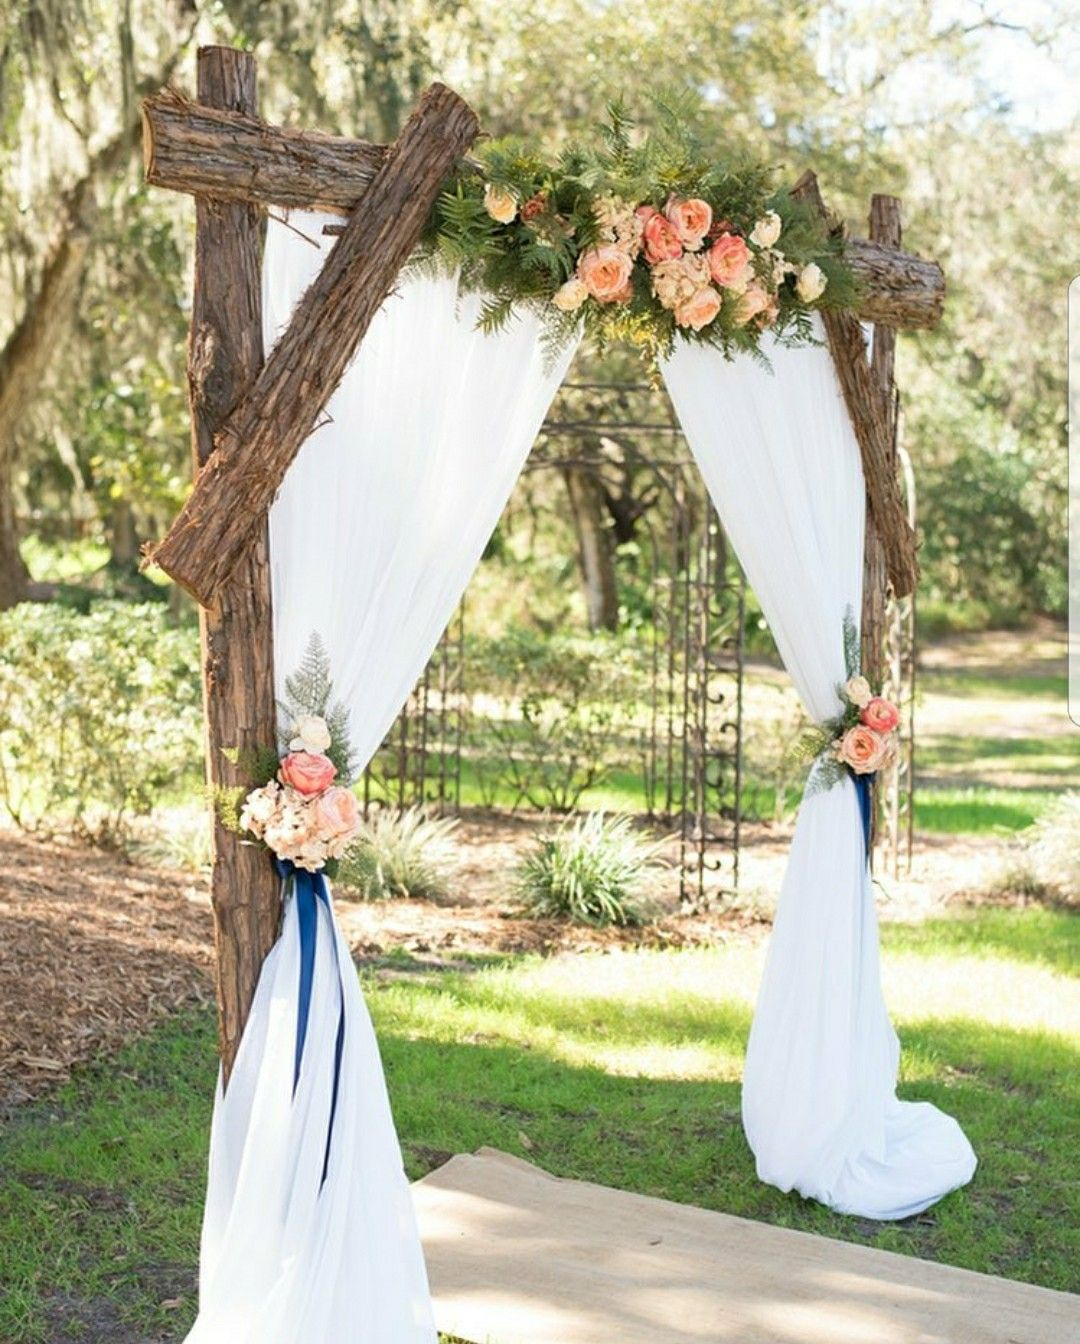 25 Chic And Easy Rustic Wedding Arch Ideas For Diy Brides: Penny's Wedding In 2019